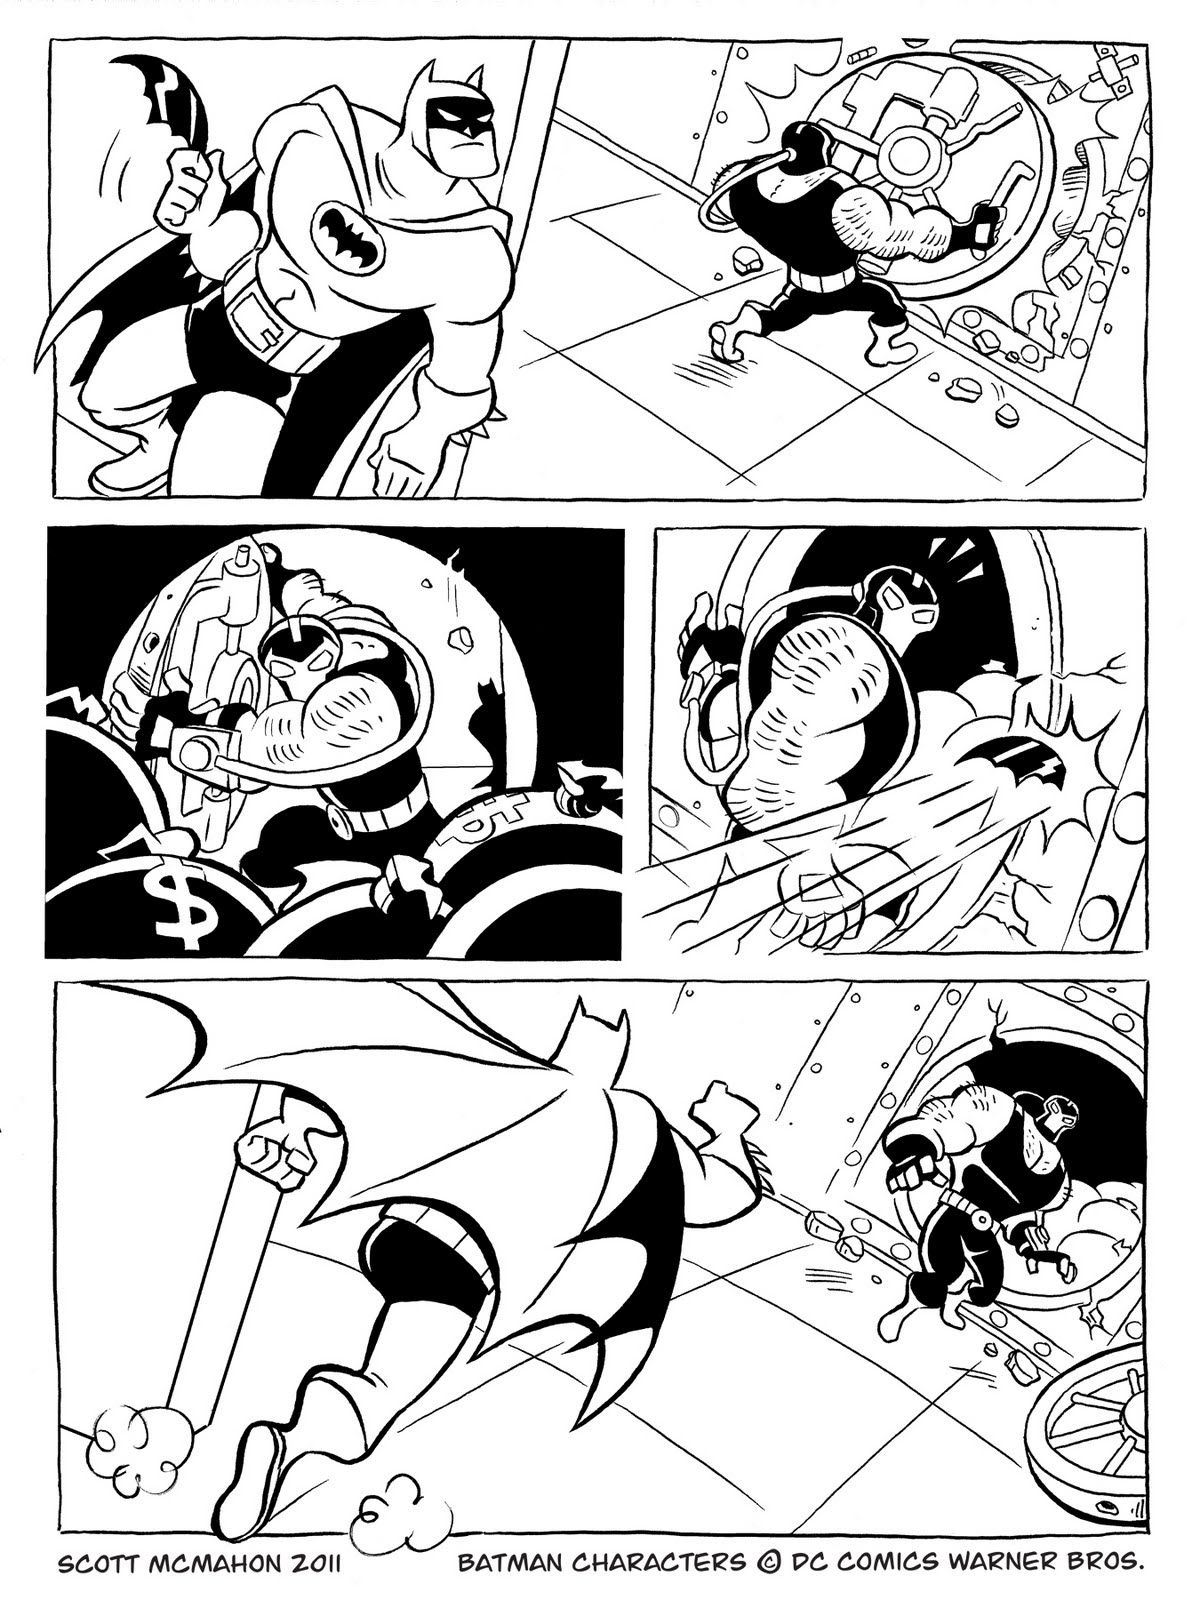 Comic Strip Coloring Pages At Getdrawings Free Download